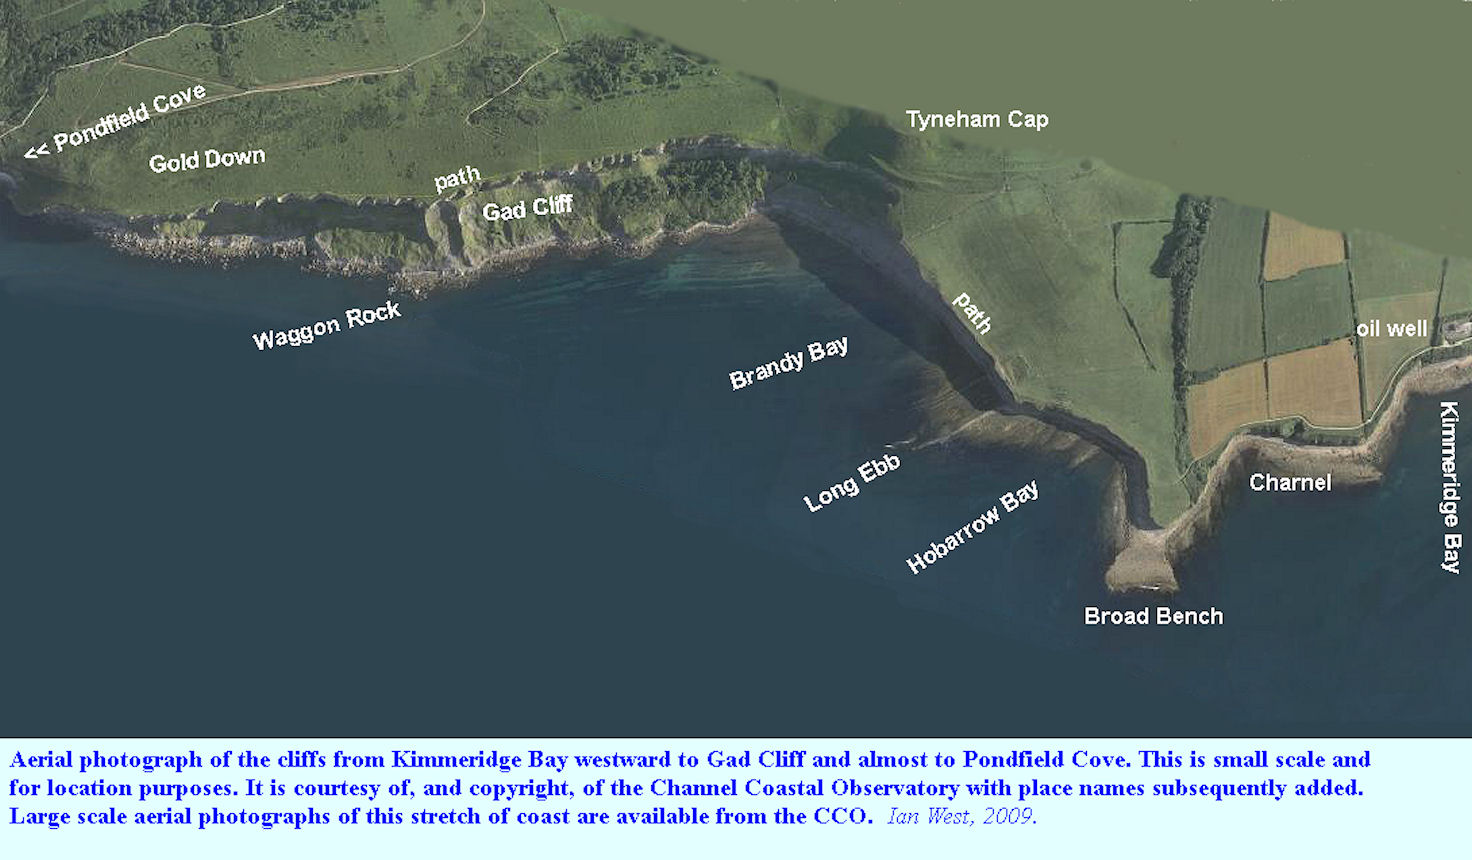 A small-scale, location aerial photograph of the cliffs west of Kimmeridge Bay, Dorset, to Gad Cliff